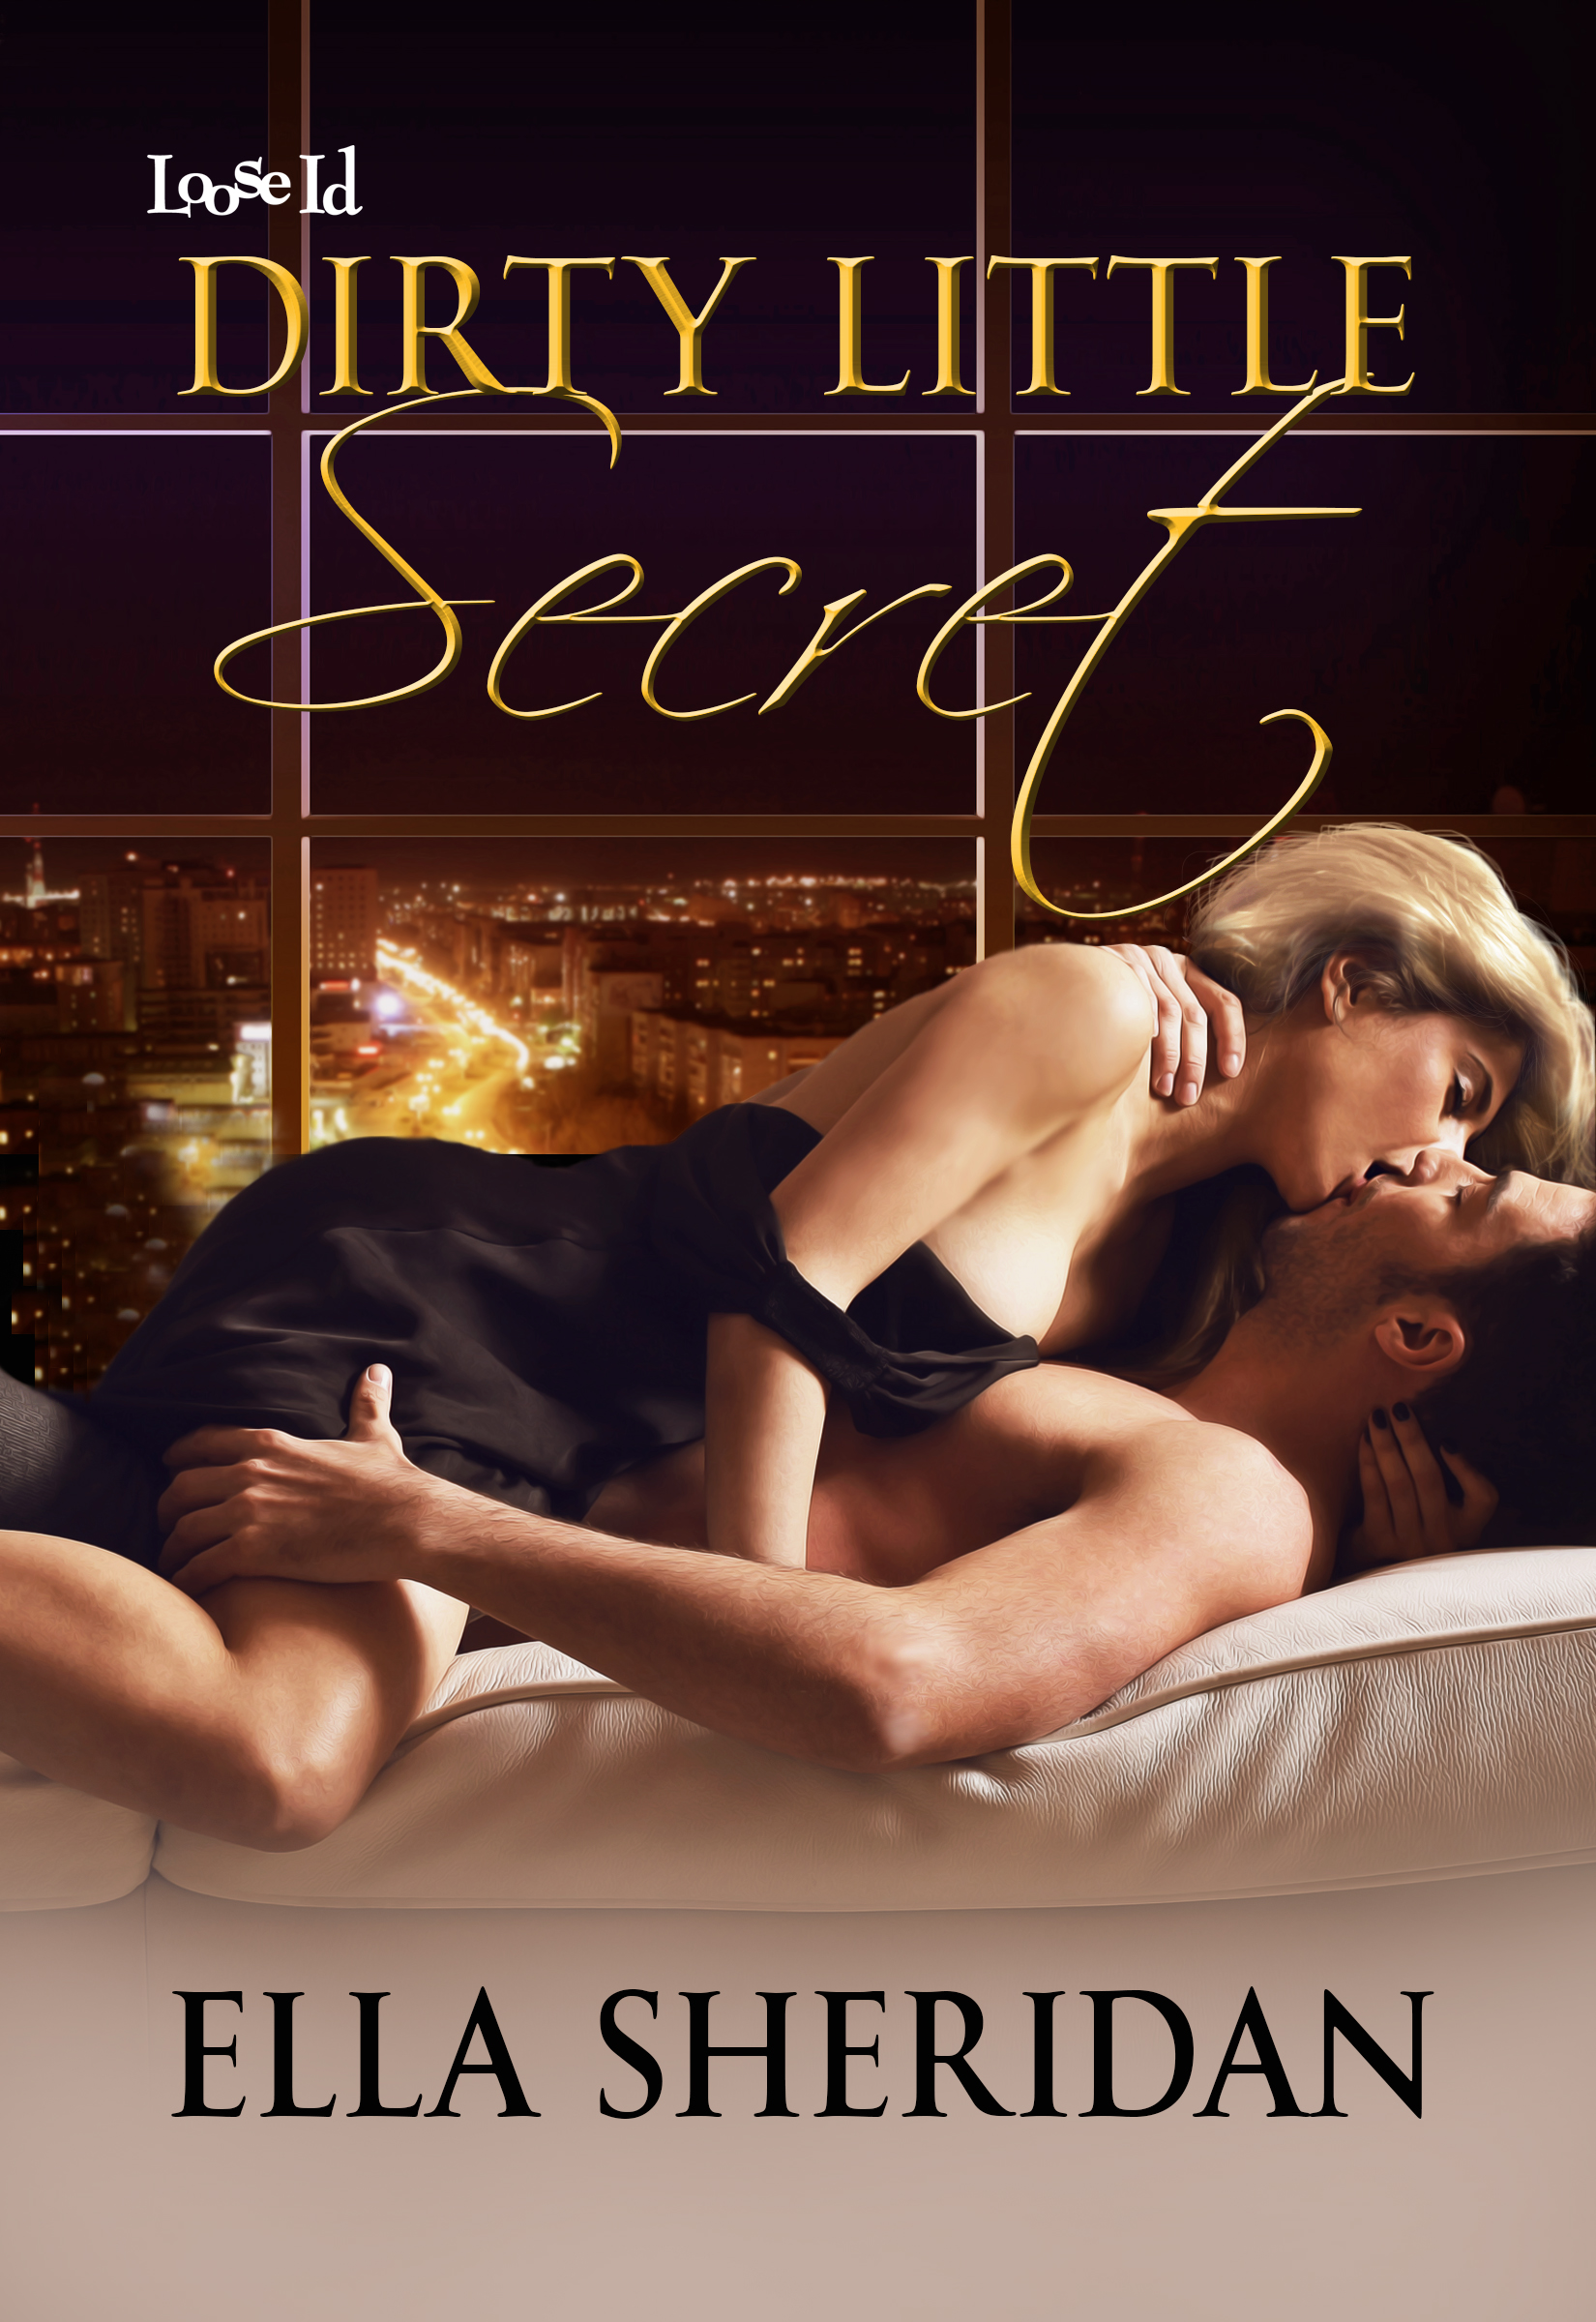 ella sheridan, erotic romance, dirty little secret, secrets to hide, loose id